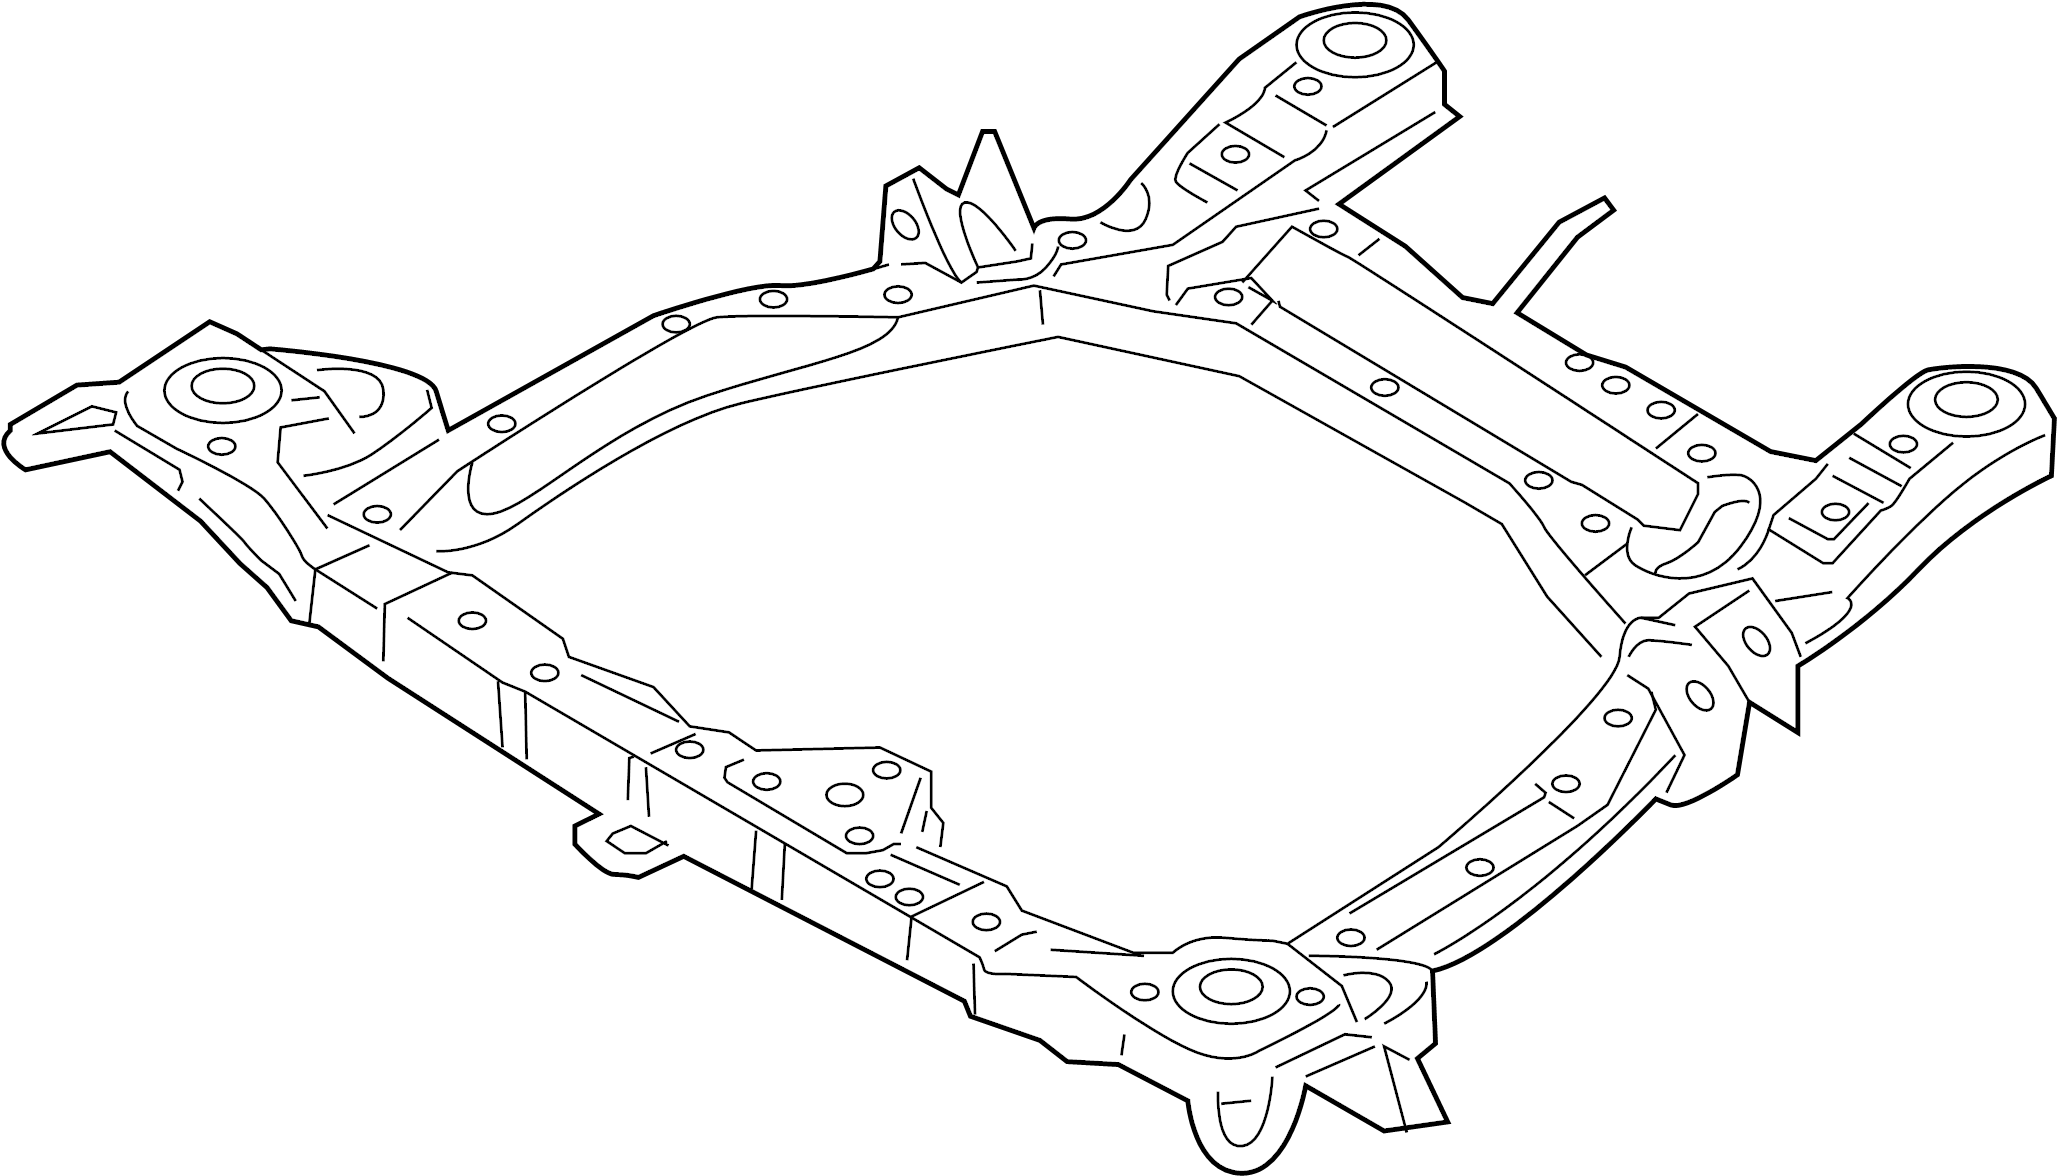 hyundai santa fe front suspension diagrams